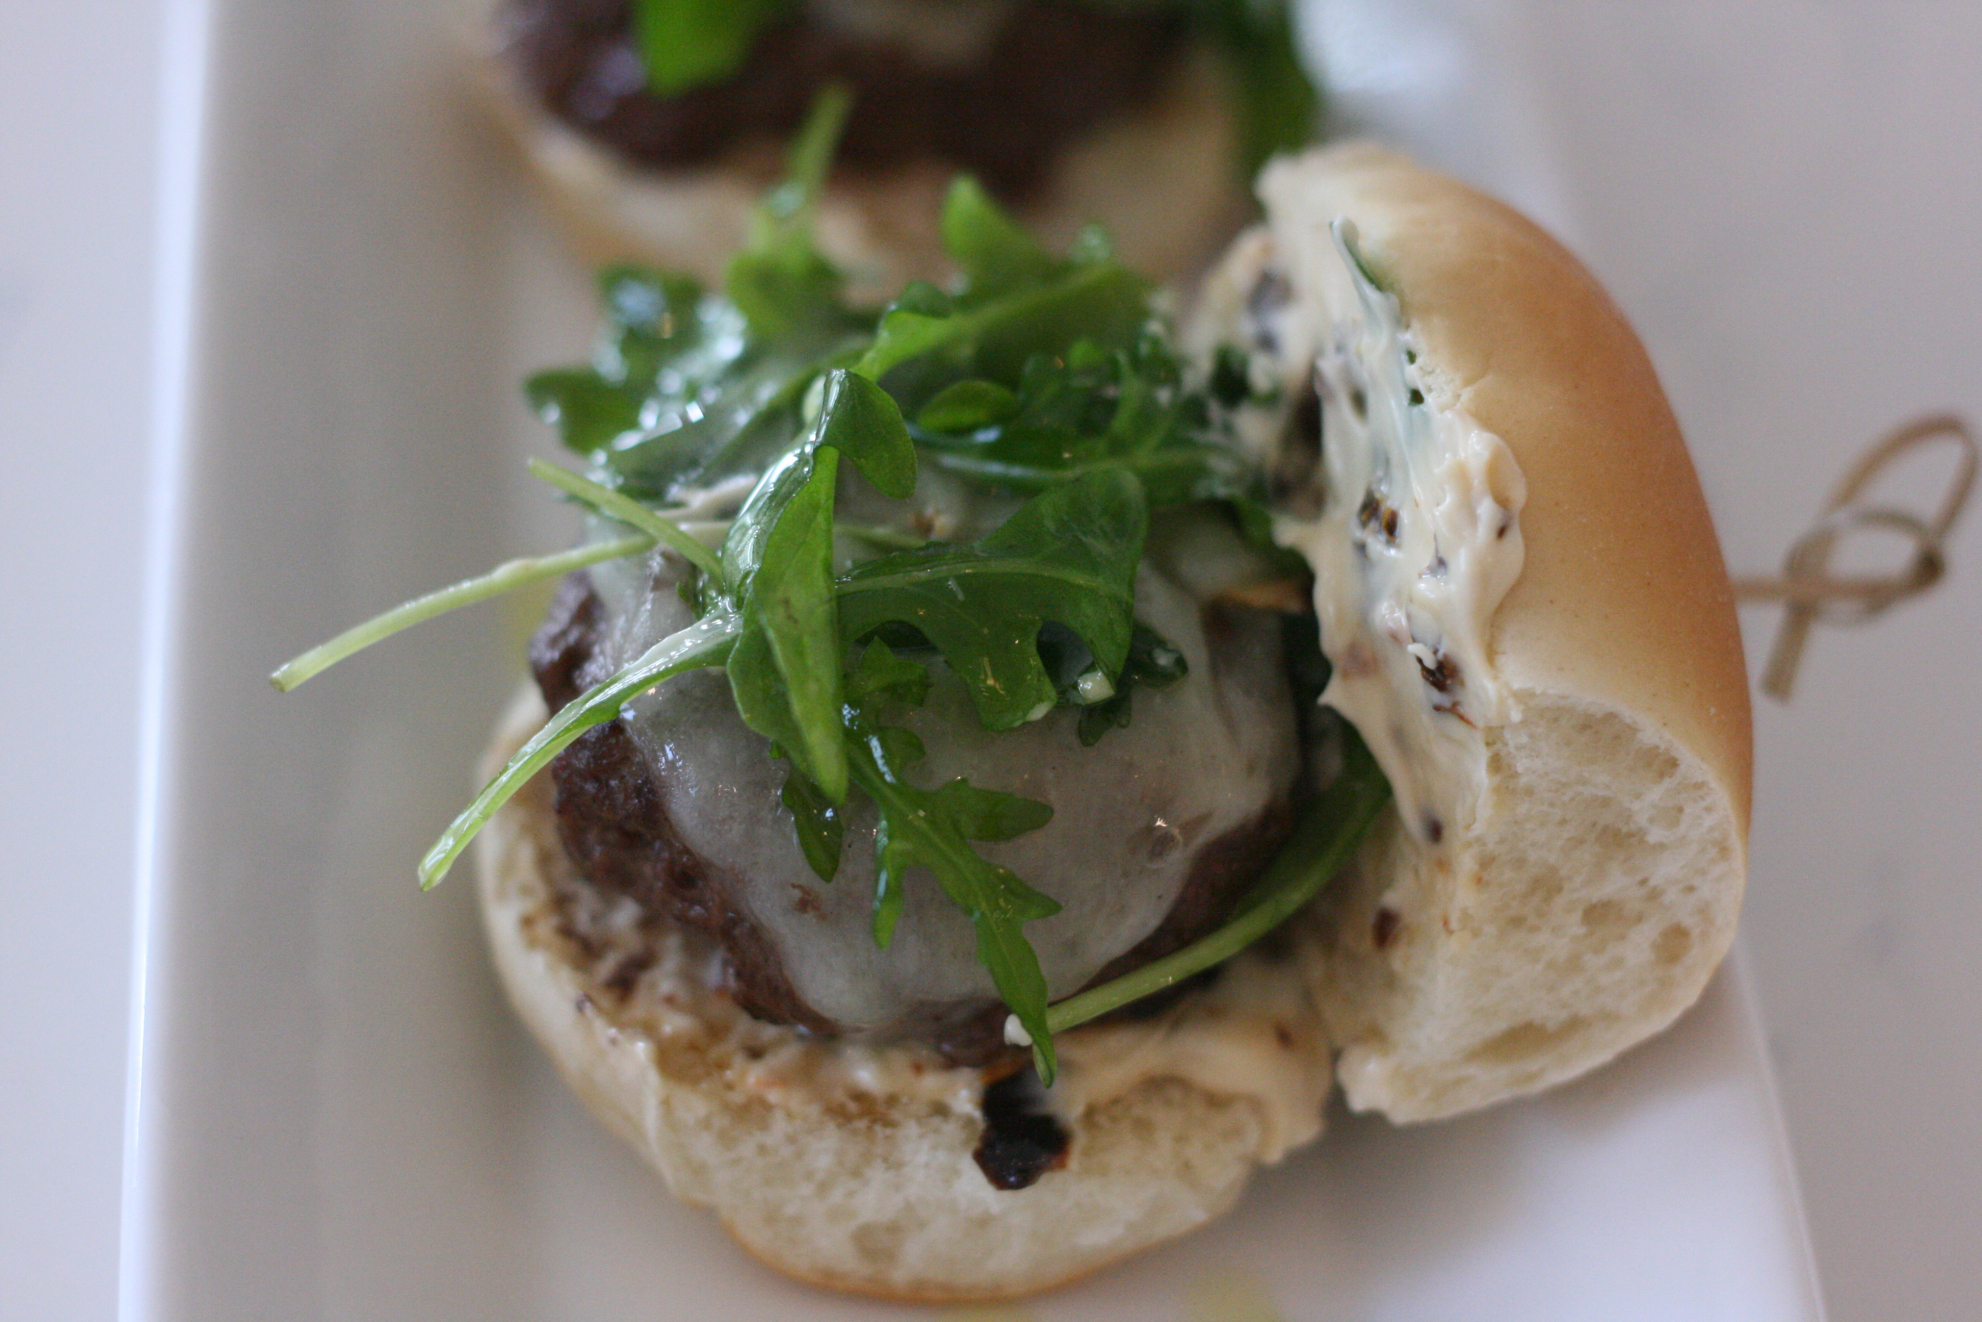 Summertime Sliders with Sundried Tomatoes and Lightly Dressed Arugula